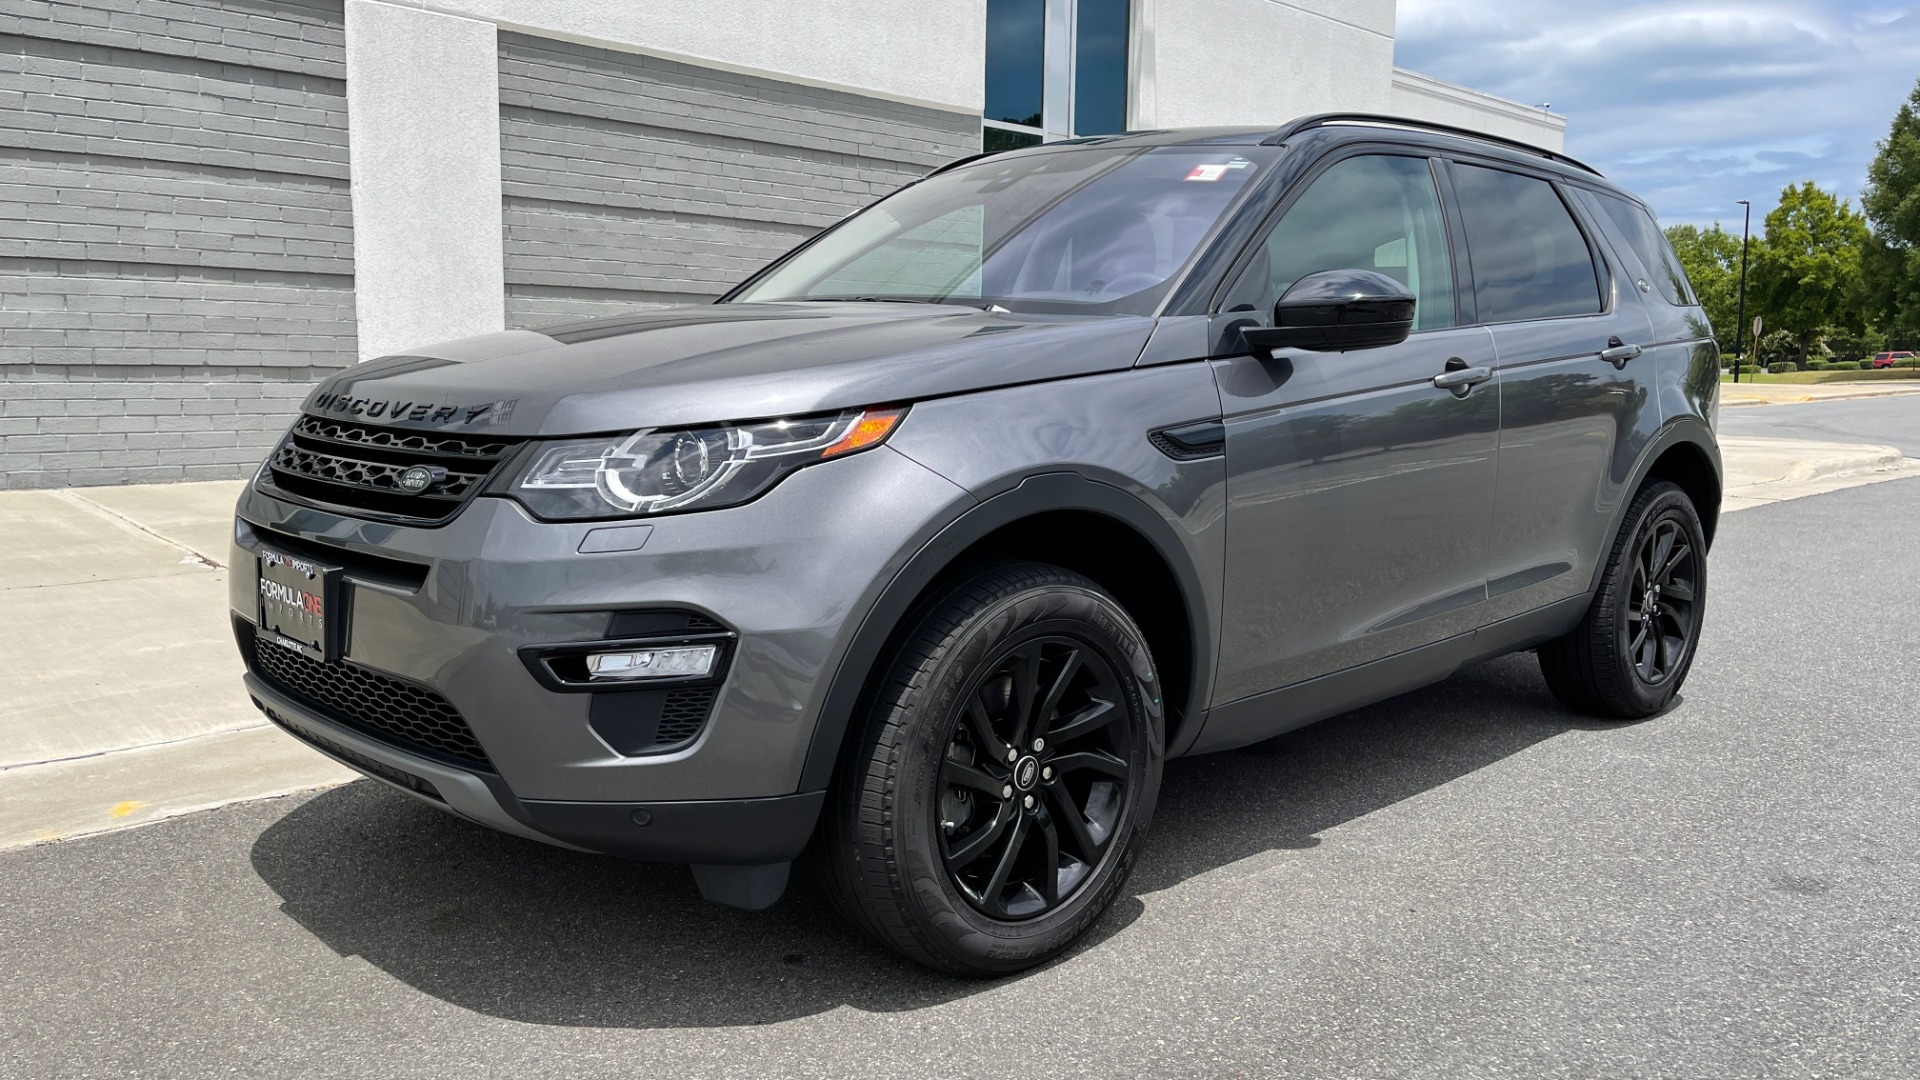 Used 2018 Land Rover DISCOVERY SPORT HSE 4WD / NAV / PANO-ROOF / MERIDIAN SND / HTD STS / LANE ASST / REARVIEW for sale $34,995 at Formula Imports in Charlotte NC 28227 3